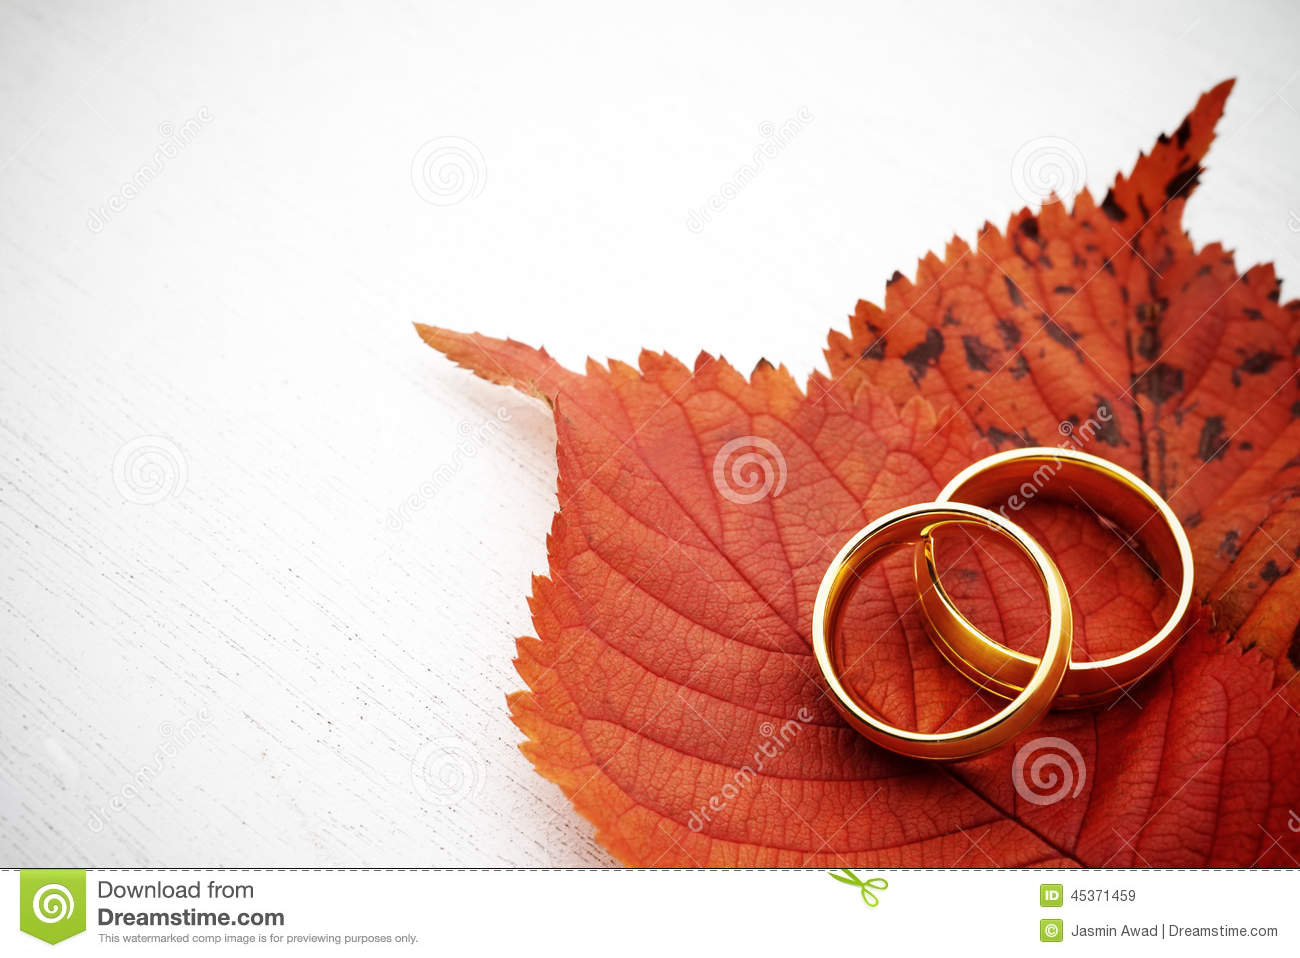 Autumn wedding invite stock image. Image of wedding, nobody - 45371459